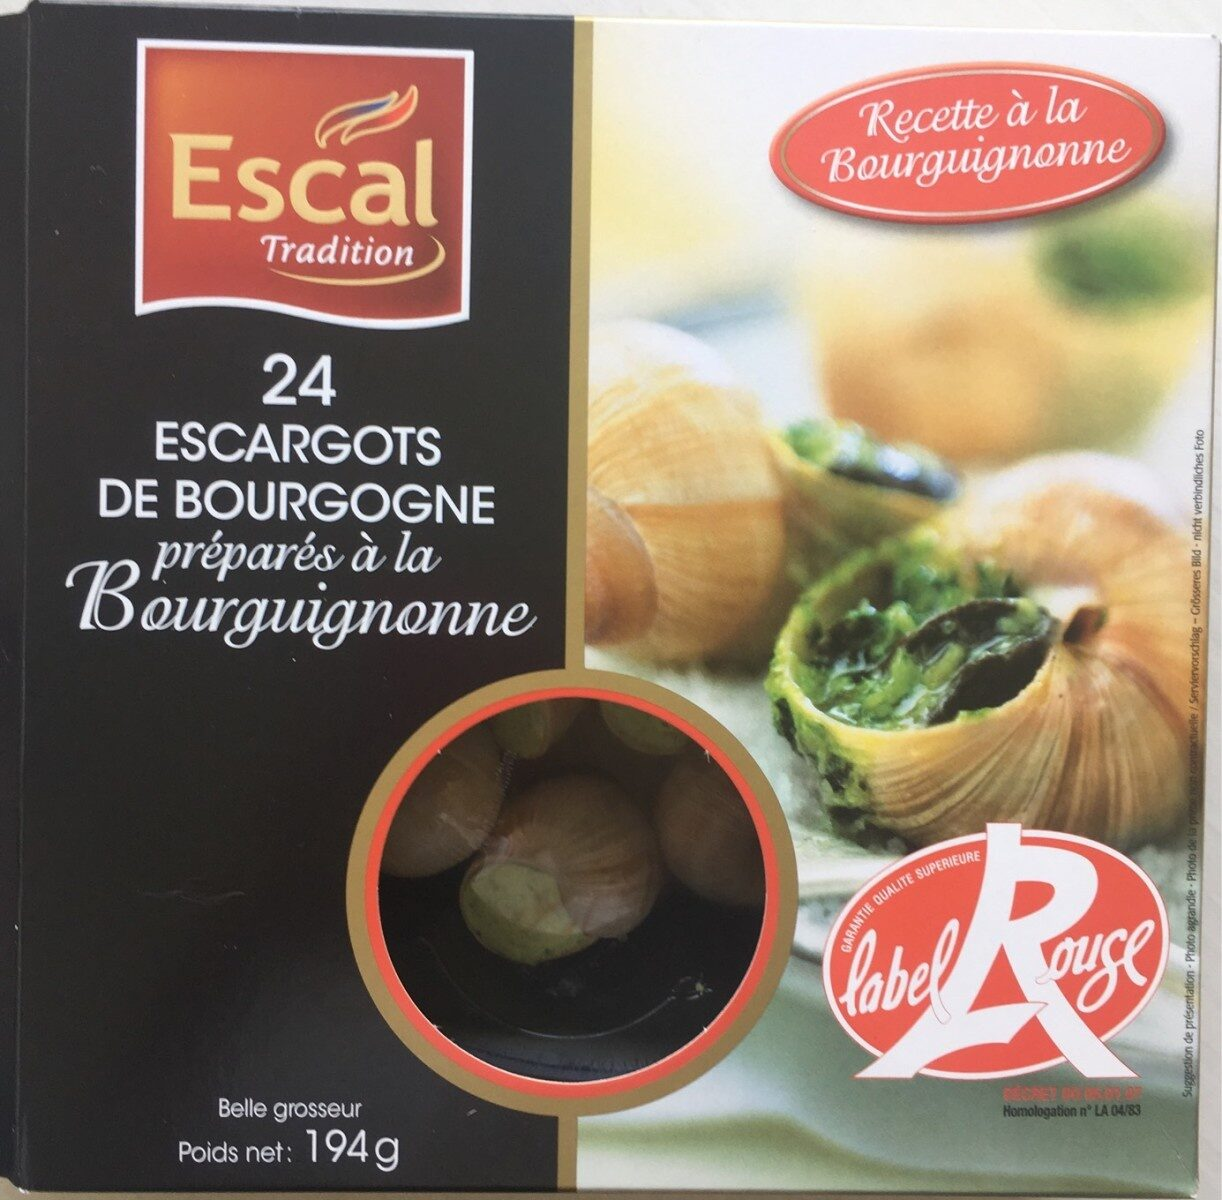 Escargots de bourgogne - Product - fr